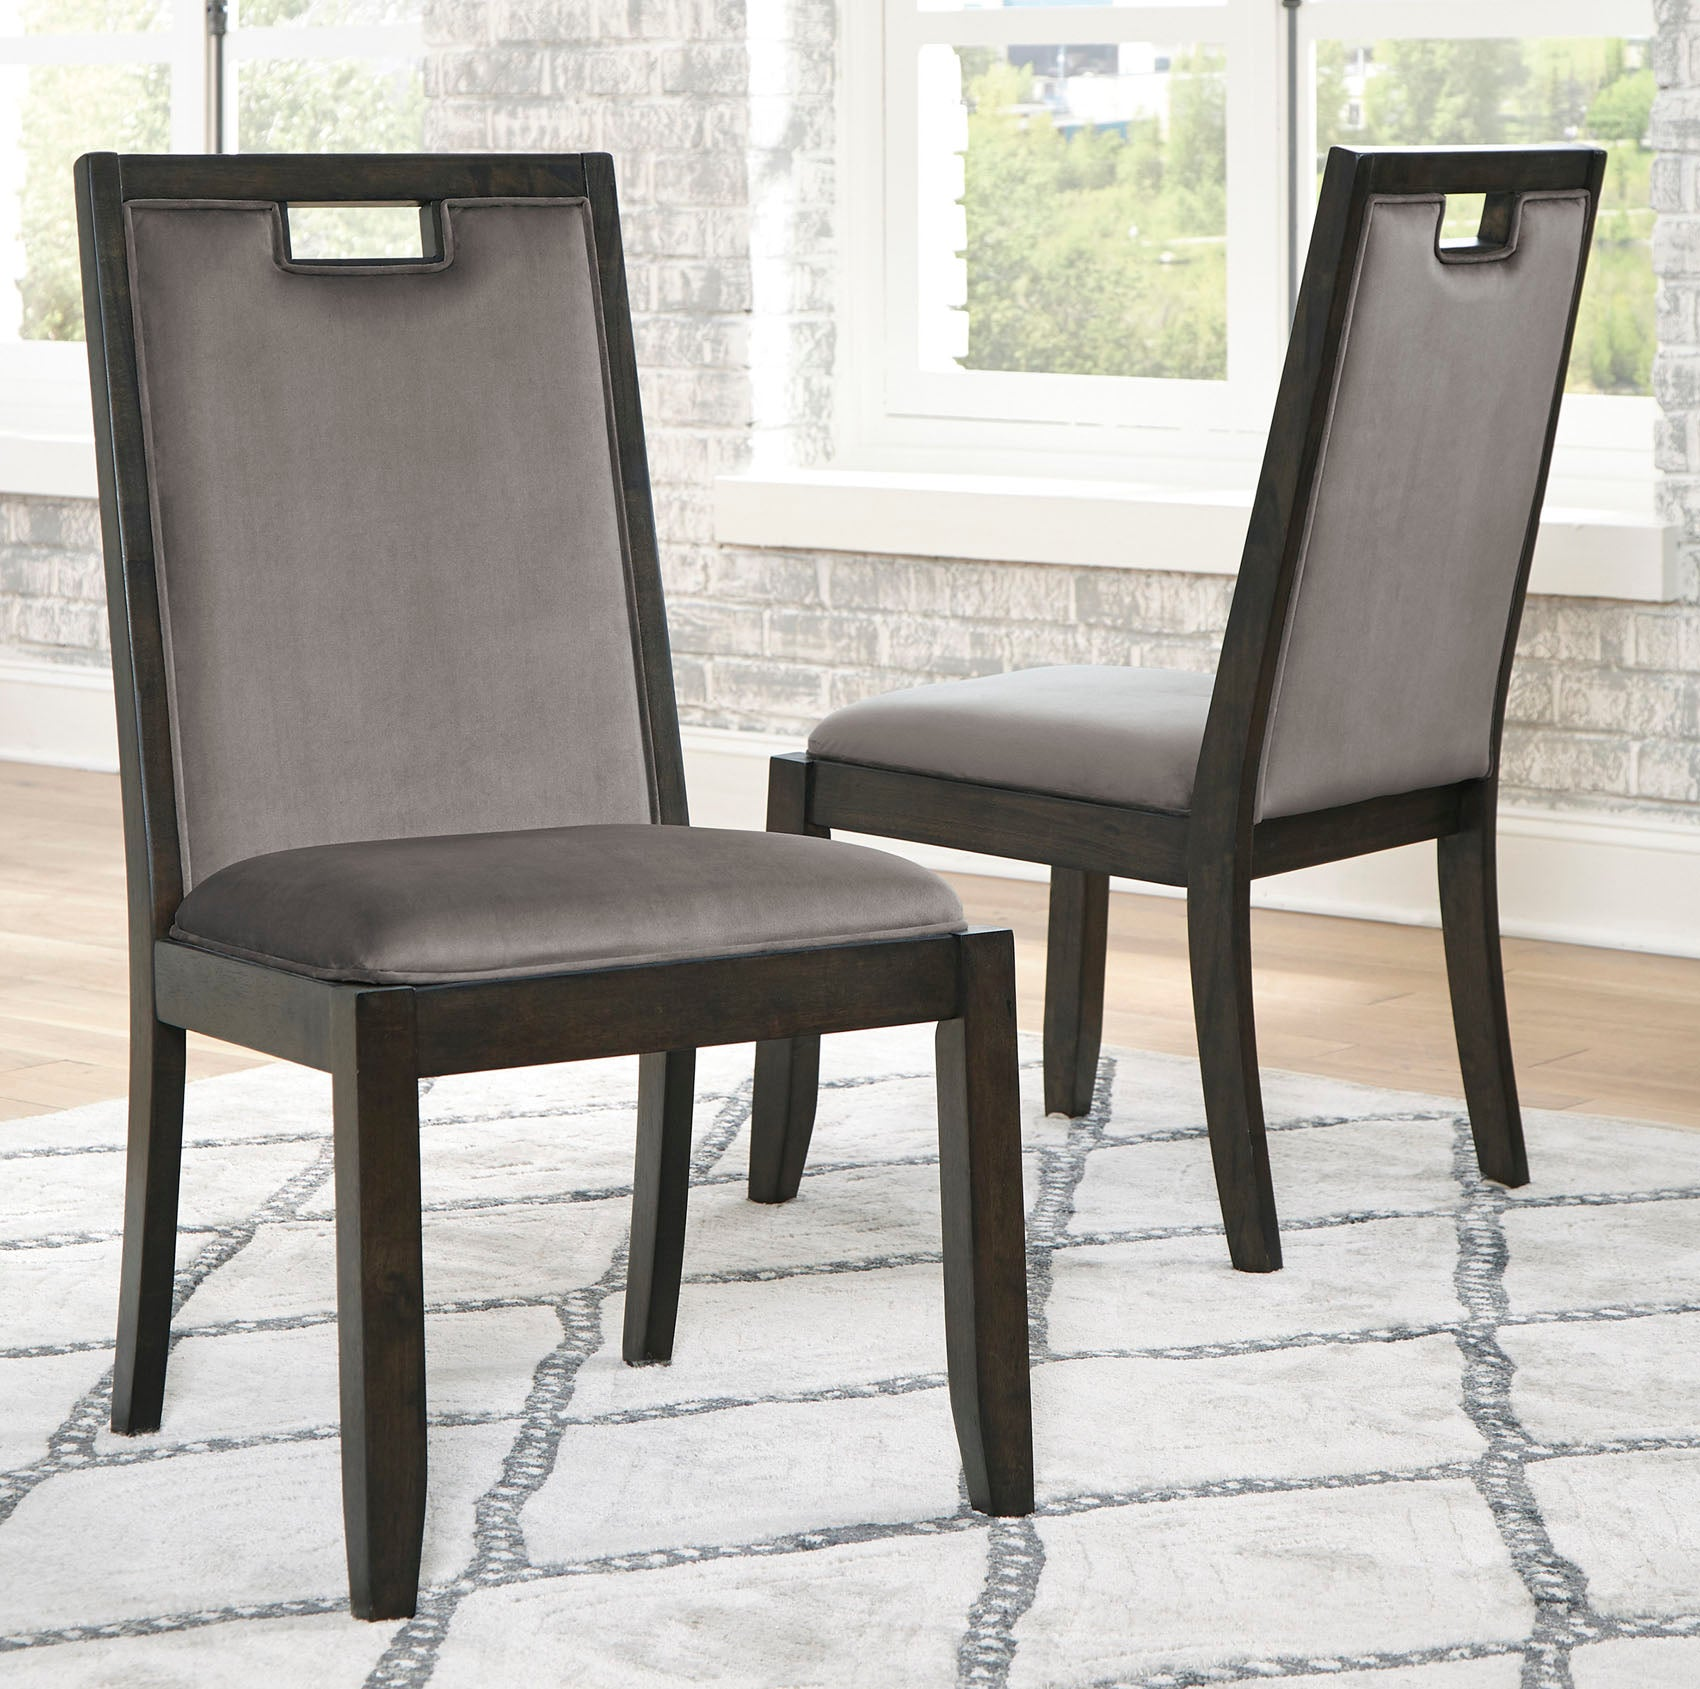 Hyndell Dining Room Chair - MJM Furniture